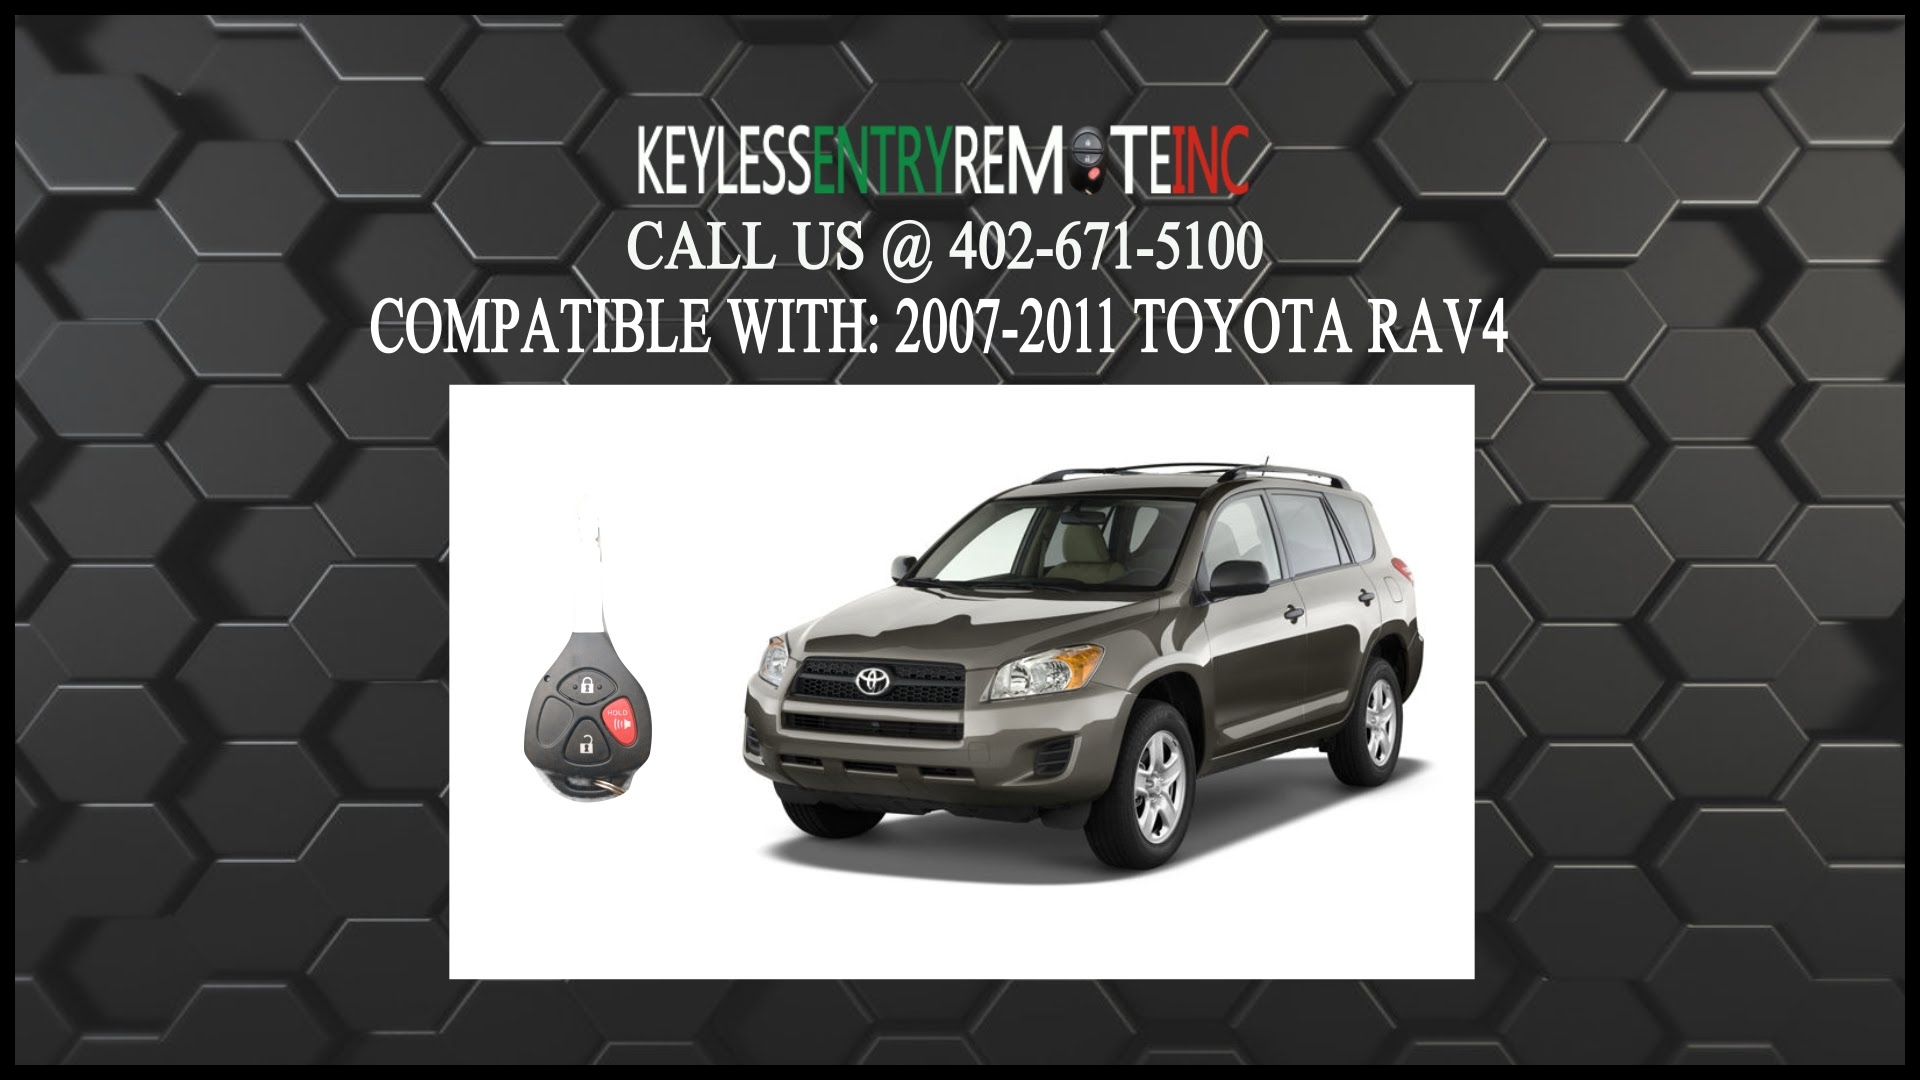 How To Replace Toyota Rav4 Key Fob Battery 2007 2008 2009 2010 2017